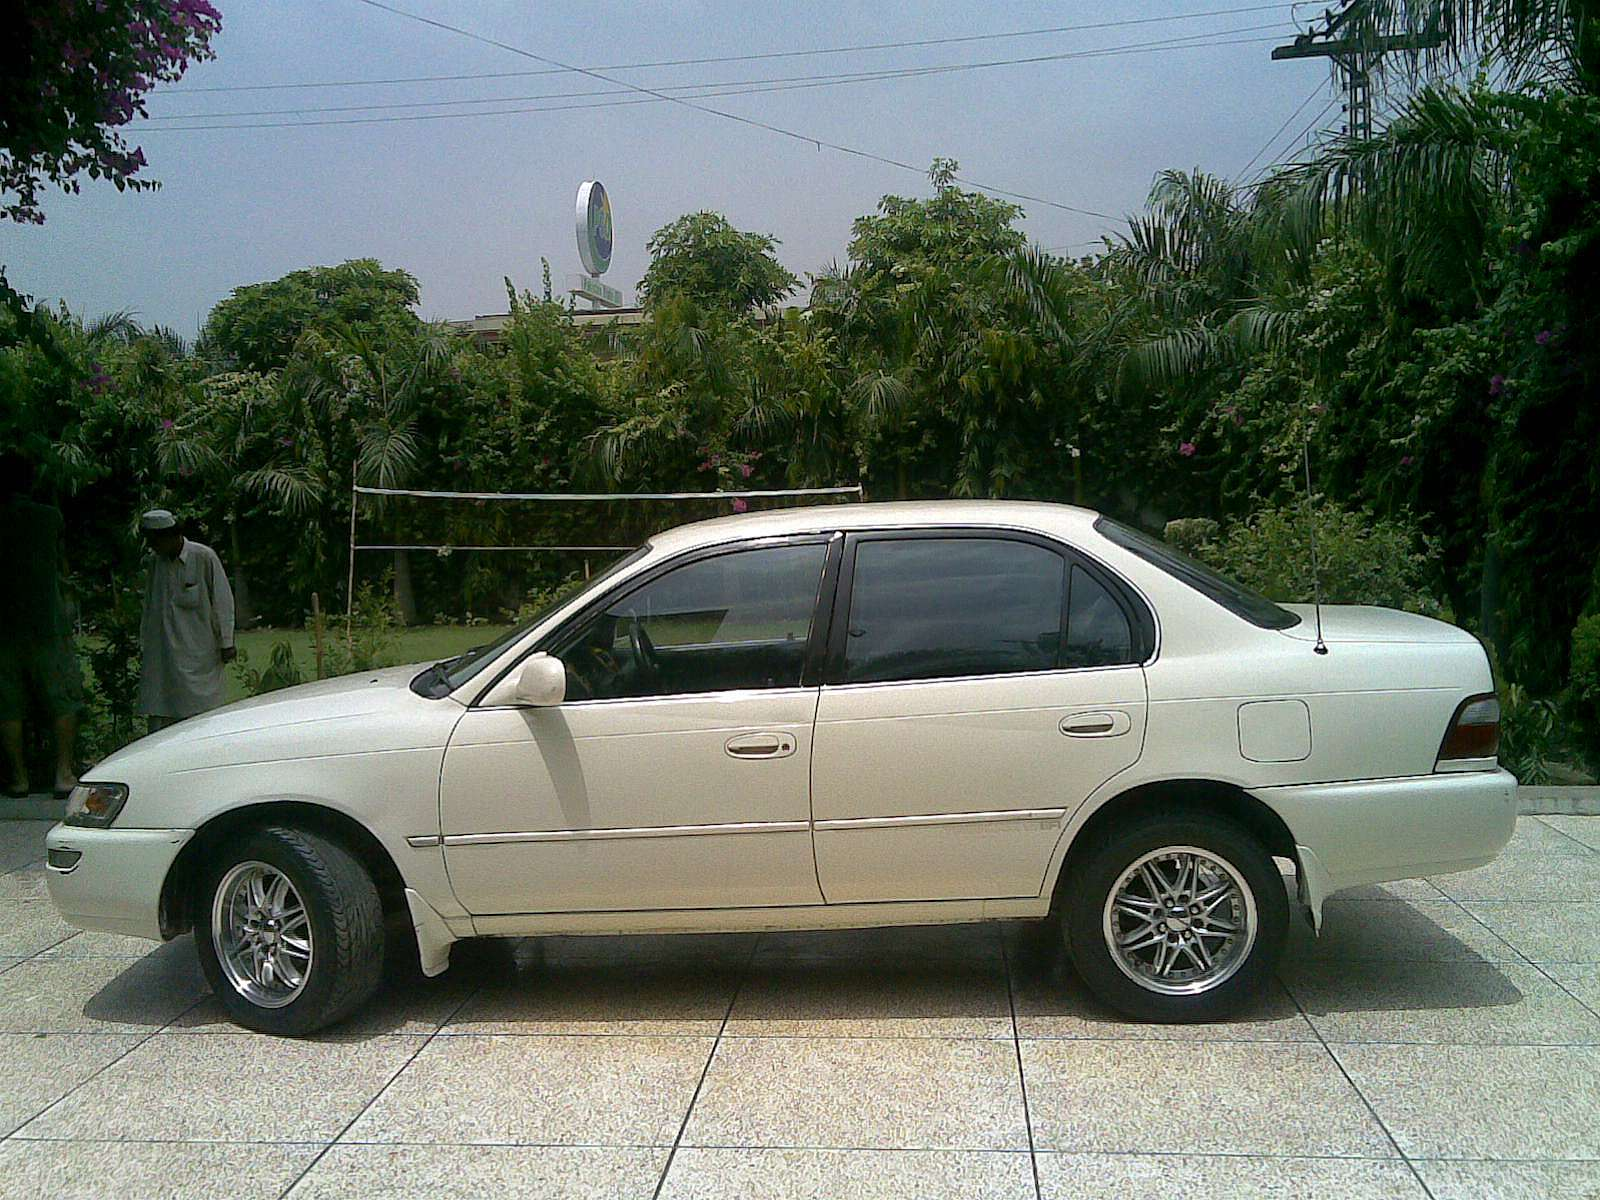 Used 1998 Toyota Corolla for Sale - Lahore, Pakistan - Free